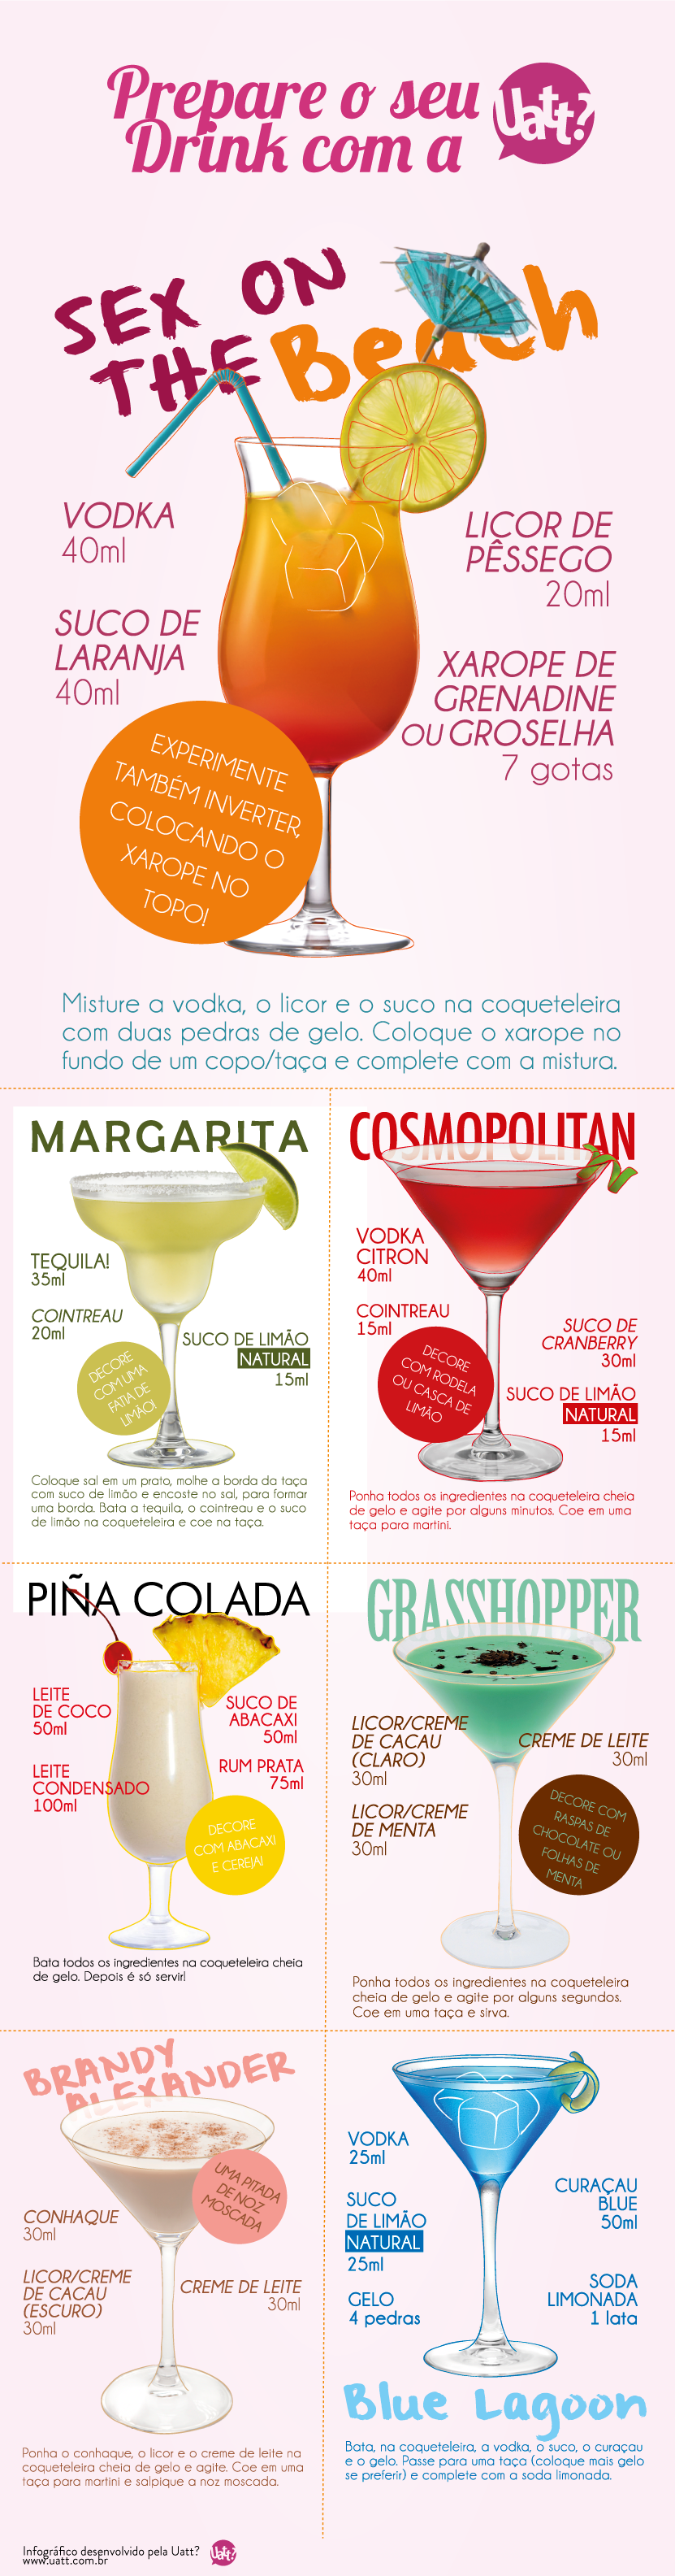 08.13--receitas-de-drinks